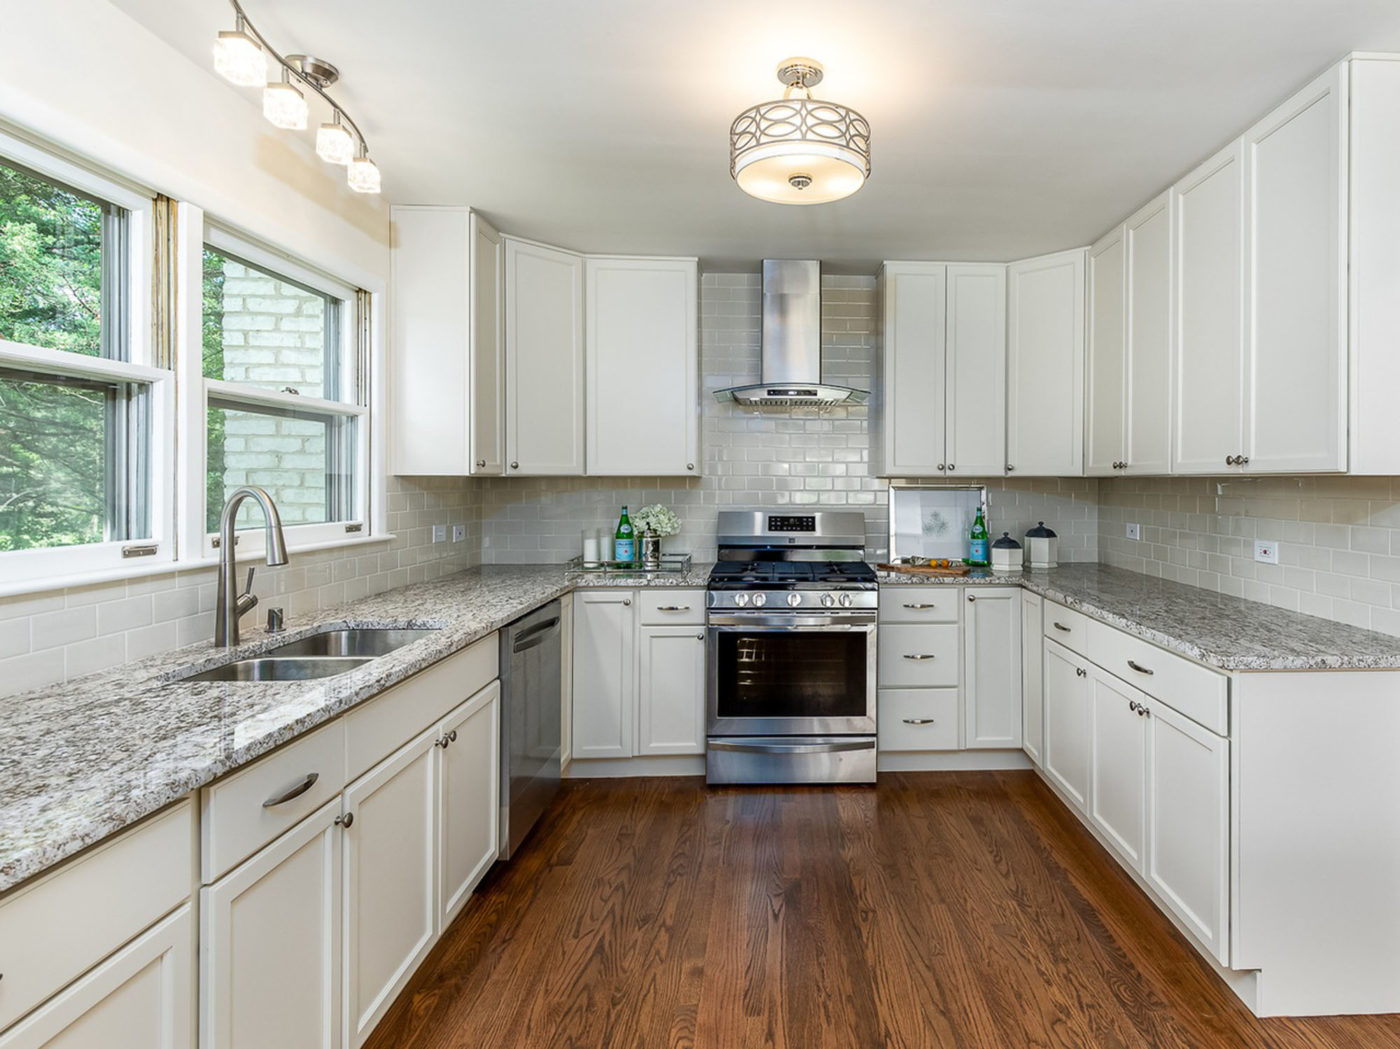 Kitchen Renovation Services and Remodeling Contractor in Schaumburg and Chicago; new kitchen hardwood flooring, cabinets, and granite countertops